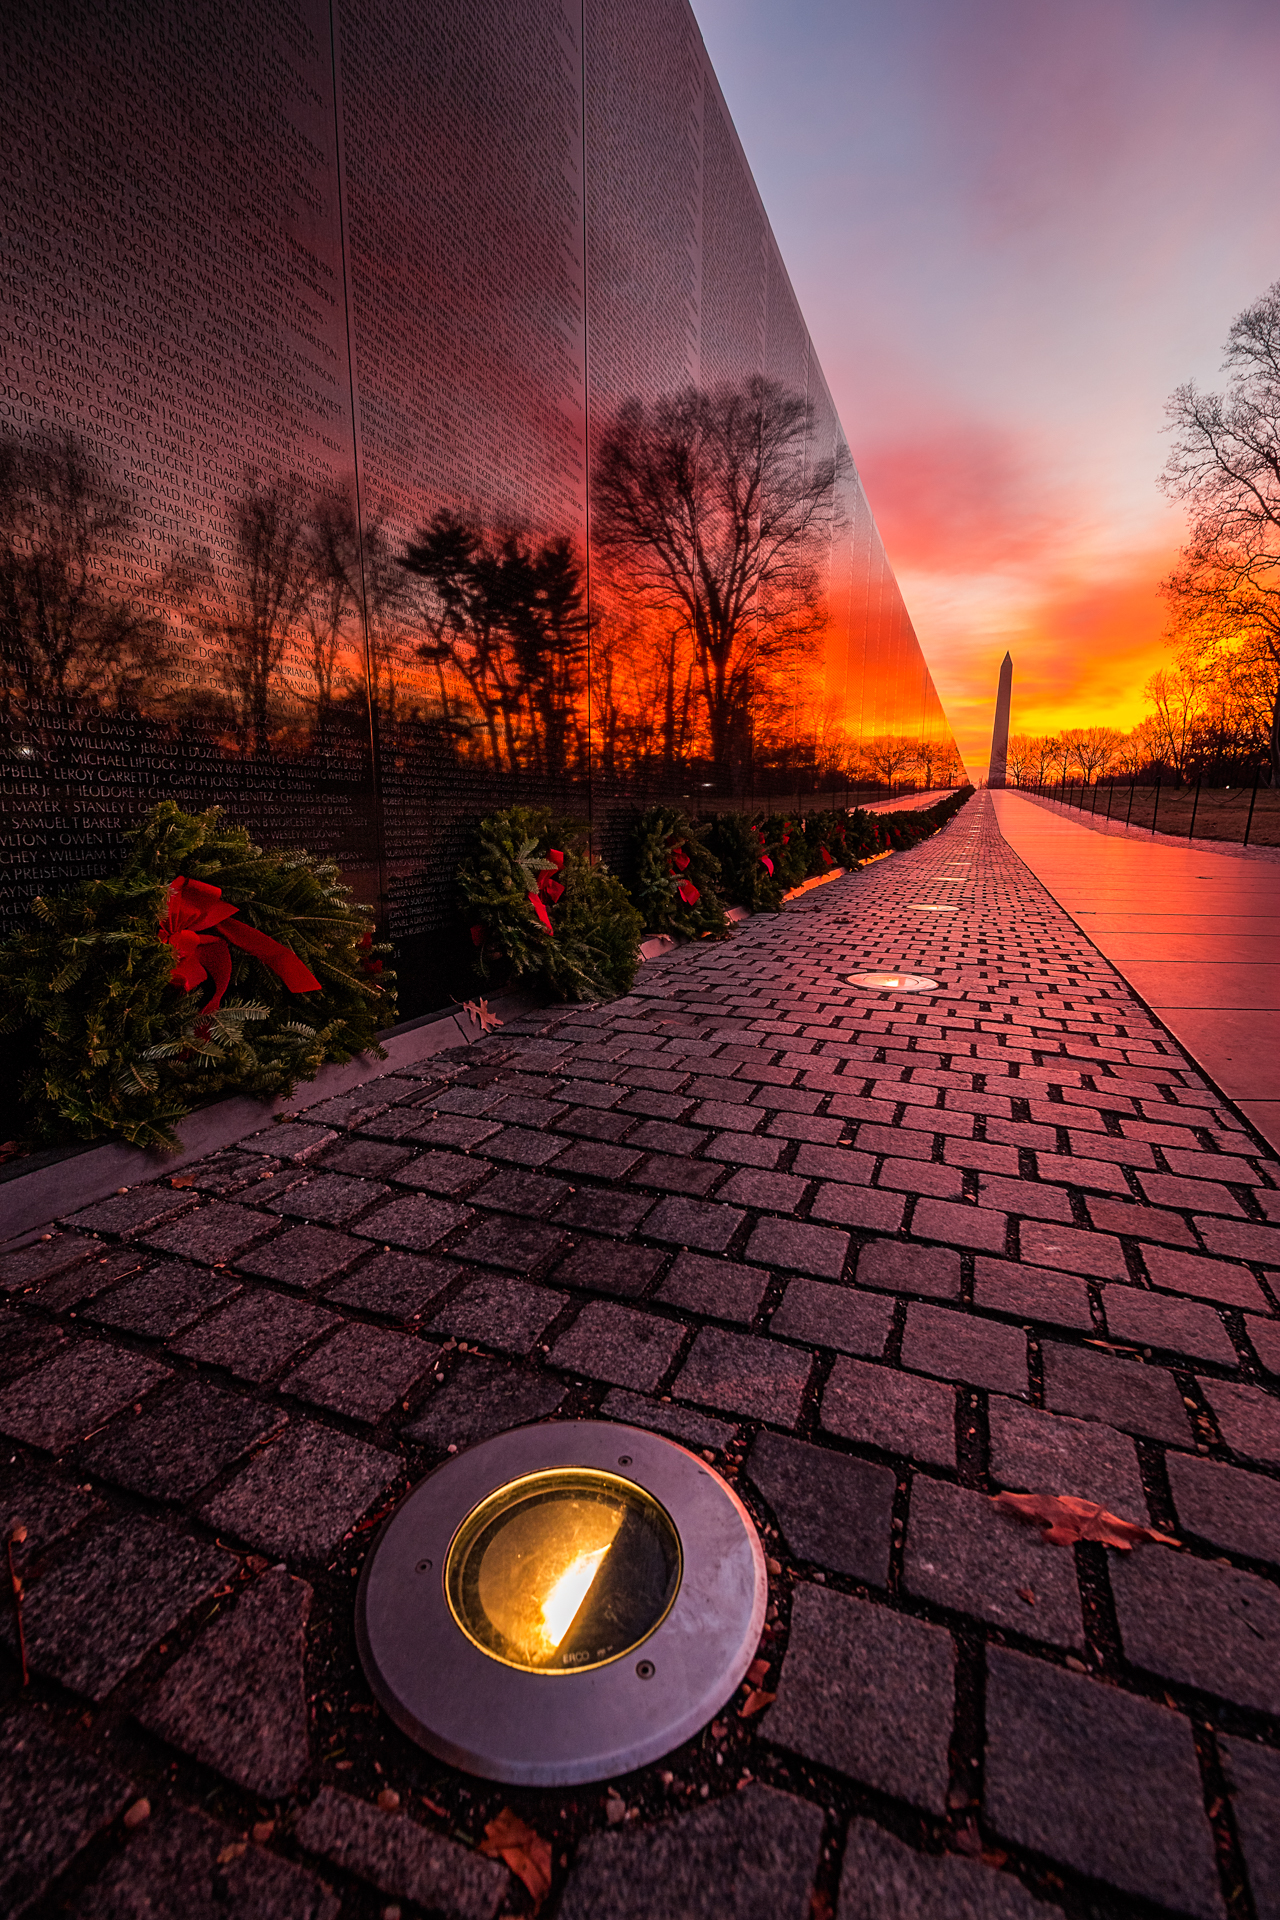 Honoring Those Lost – A bright red sunrise at the Vietnam Veterans Memorial{&amp;nbsp;}(Image: Zack Lewkowicz)<p></p>